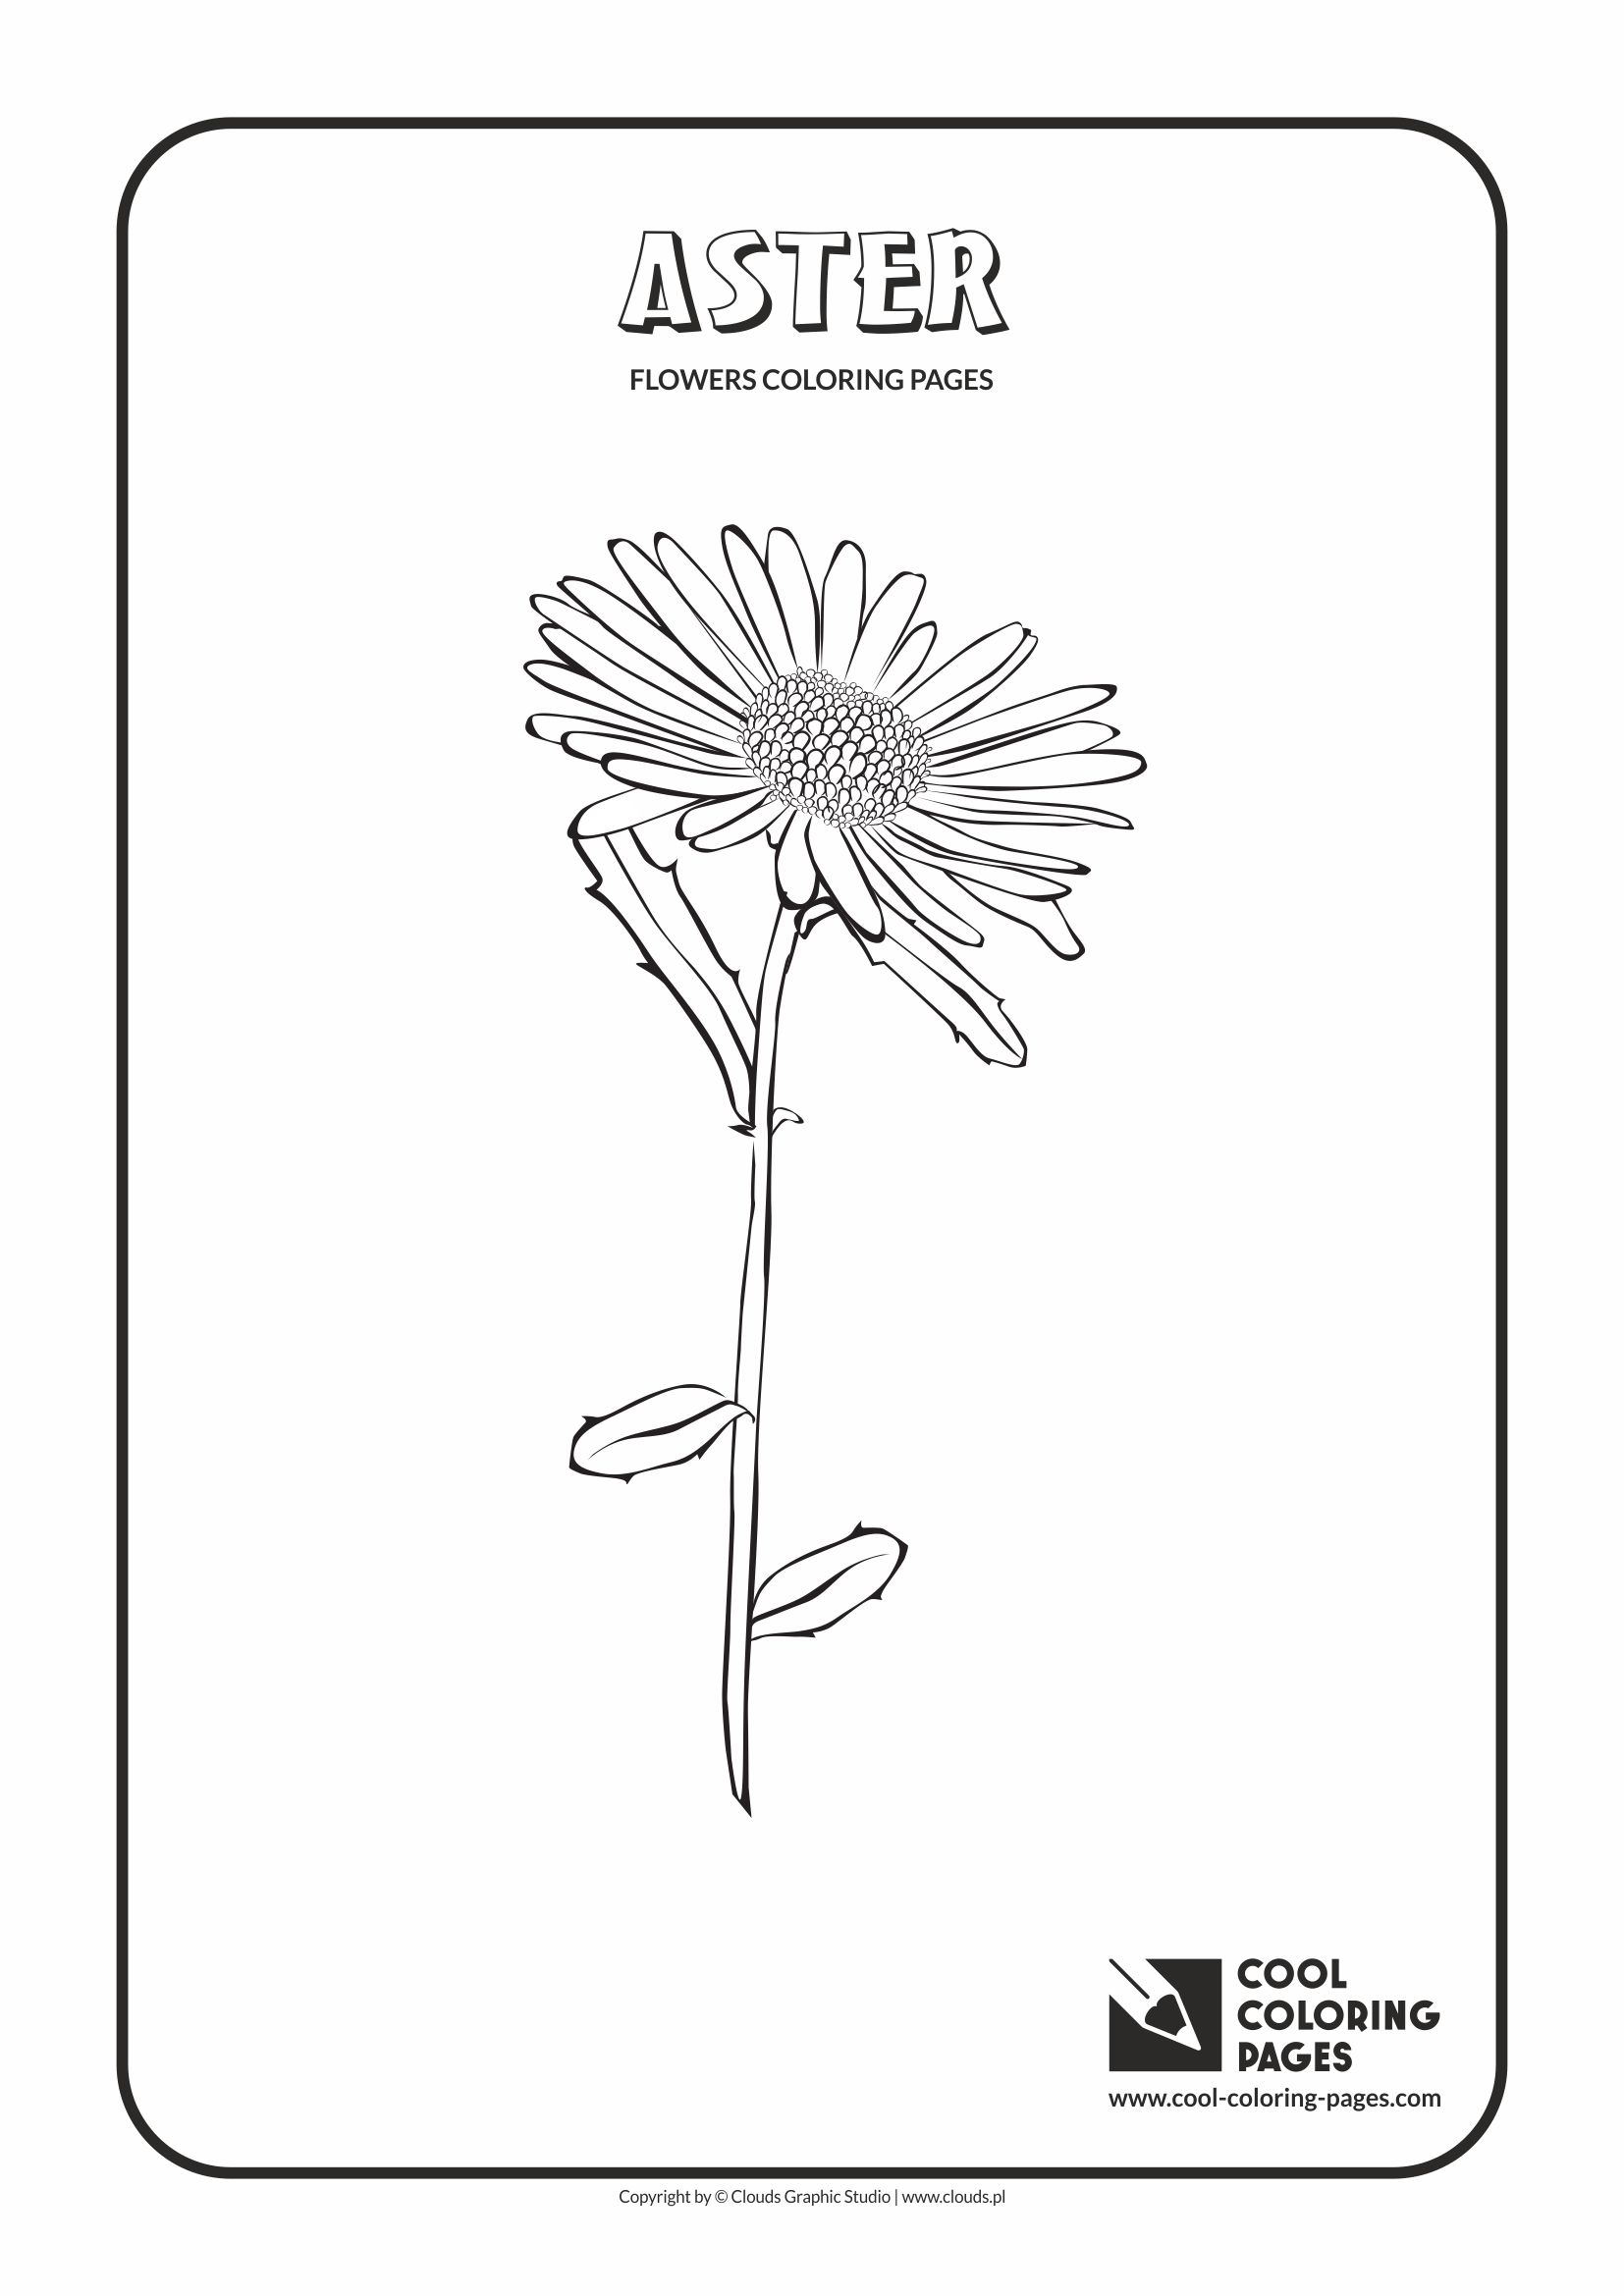 Cool Coloring Pages Flowers Coloring Pages